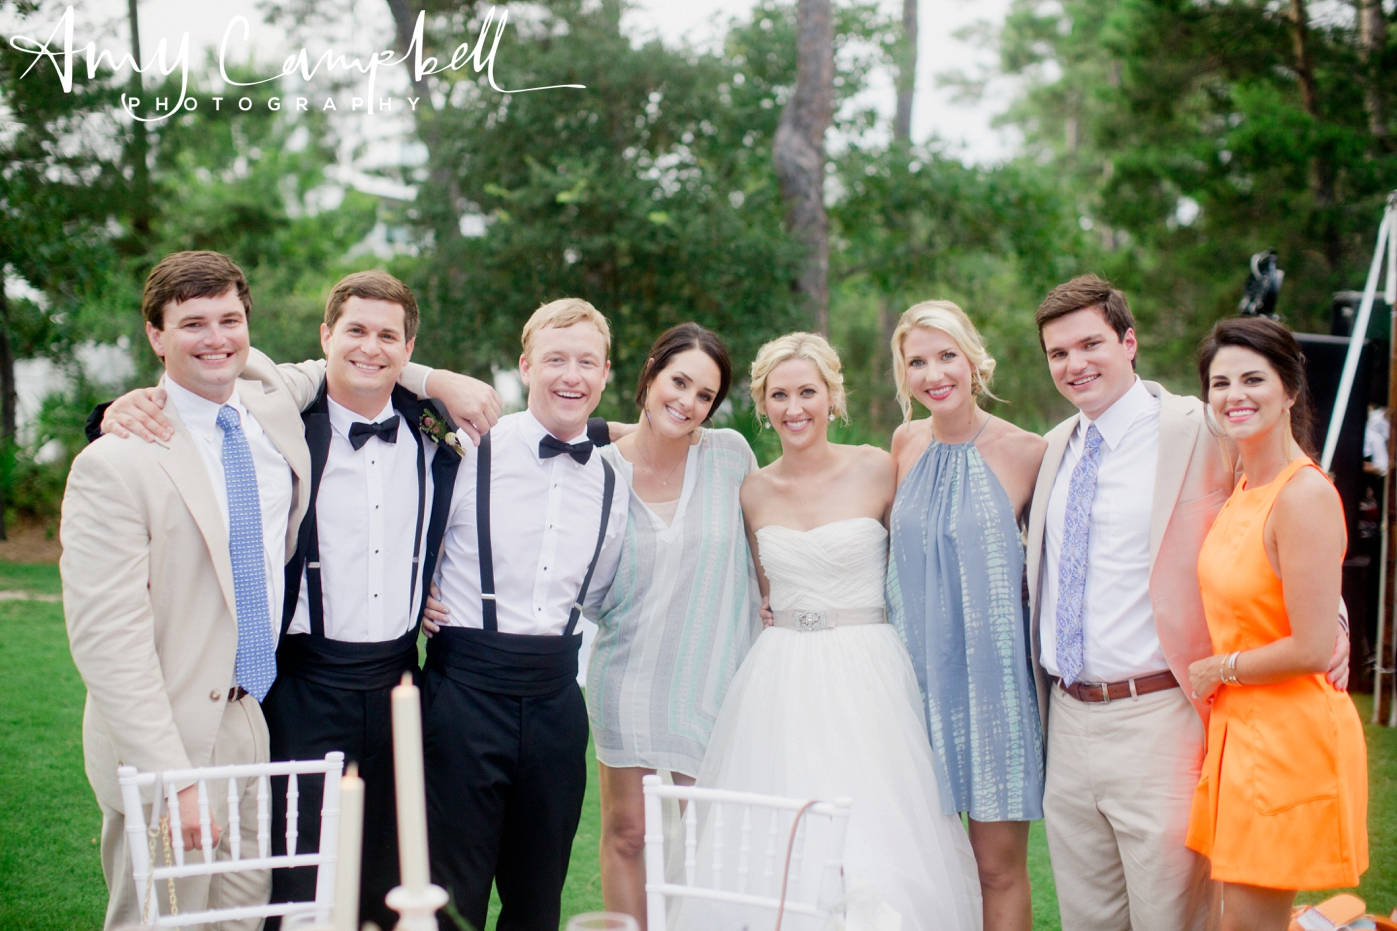 emilyreed_wed_blog_amycampbellphotography_0091.jpg